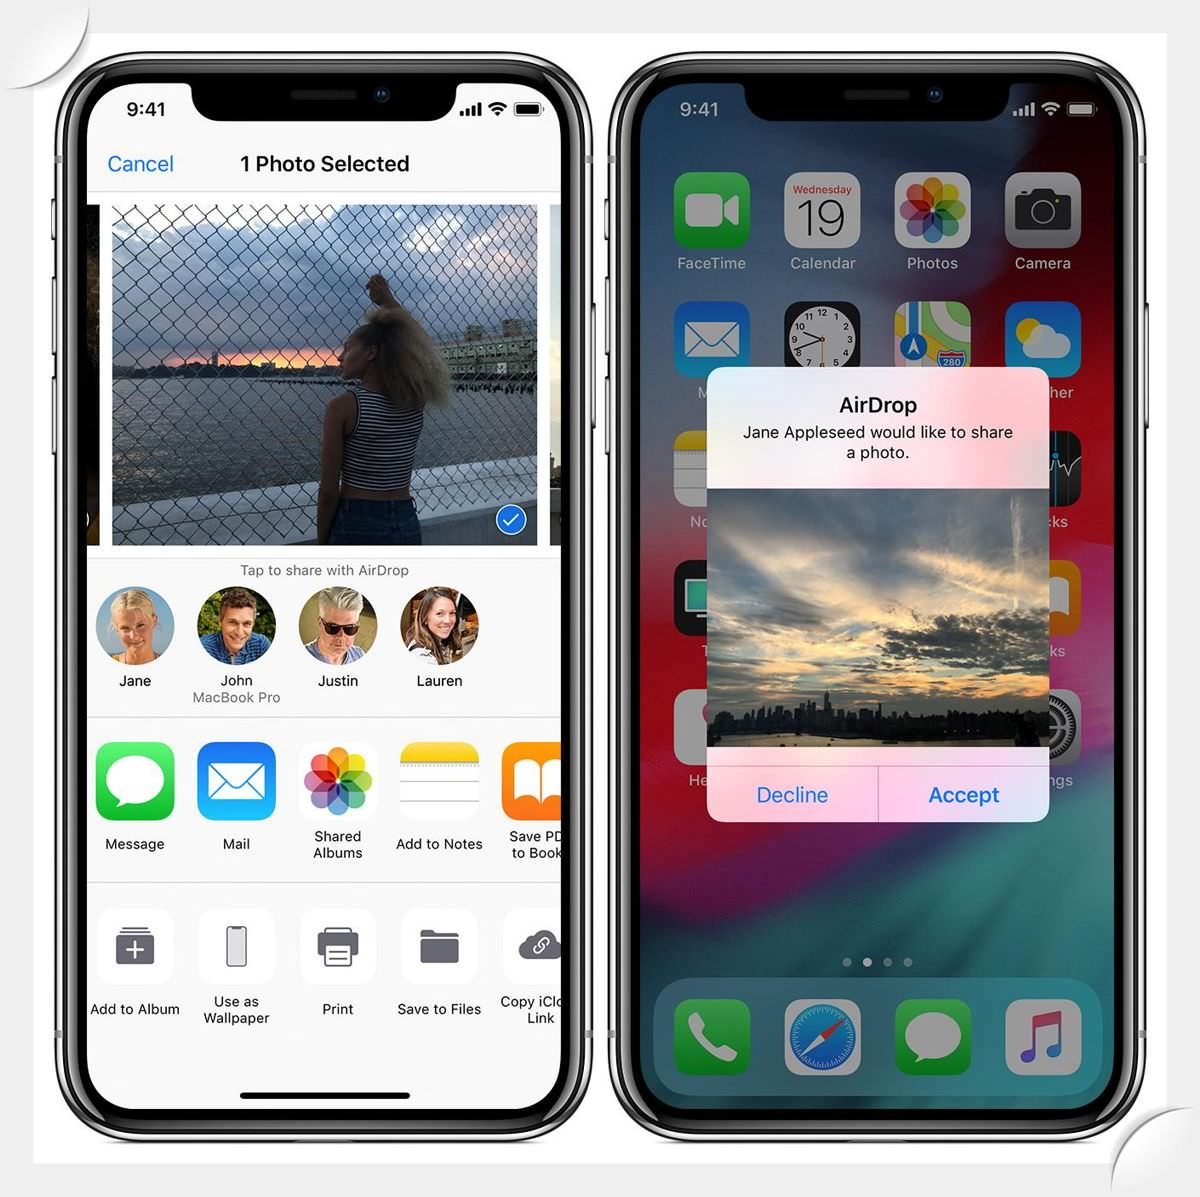 AirDrop is a file-sharing feature from Apple